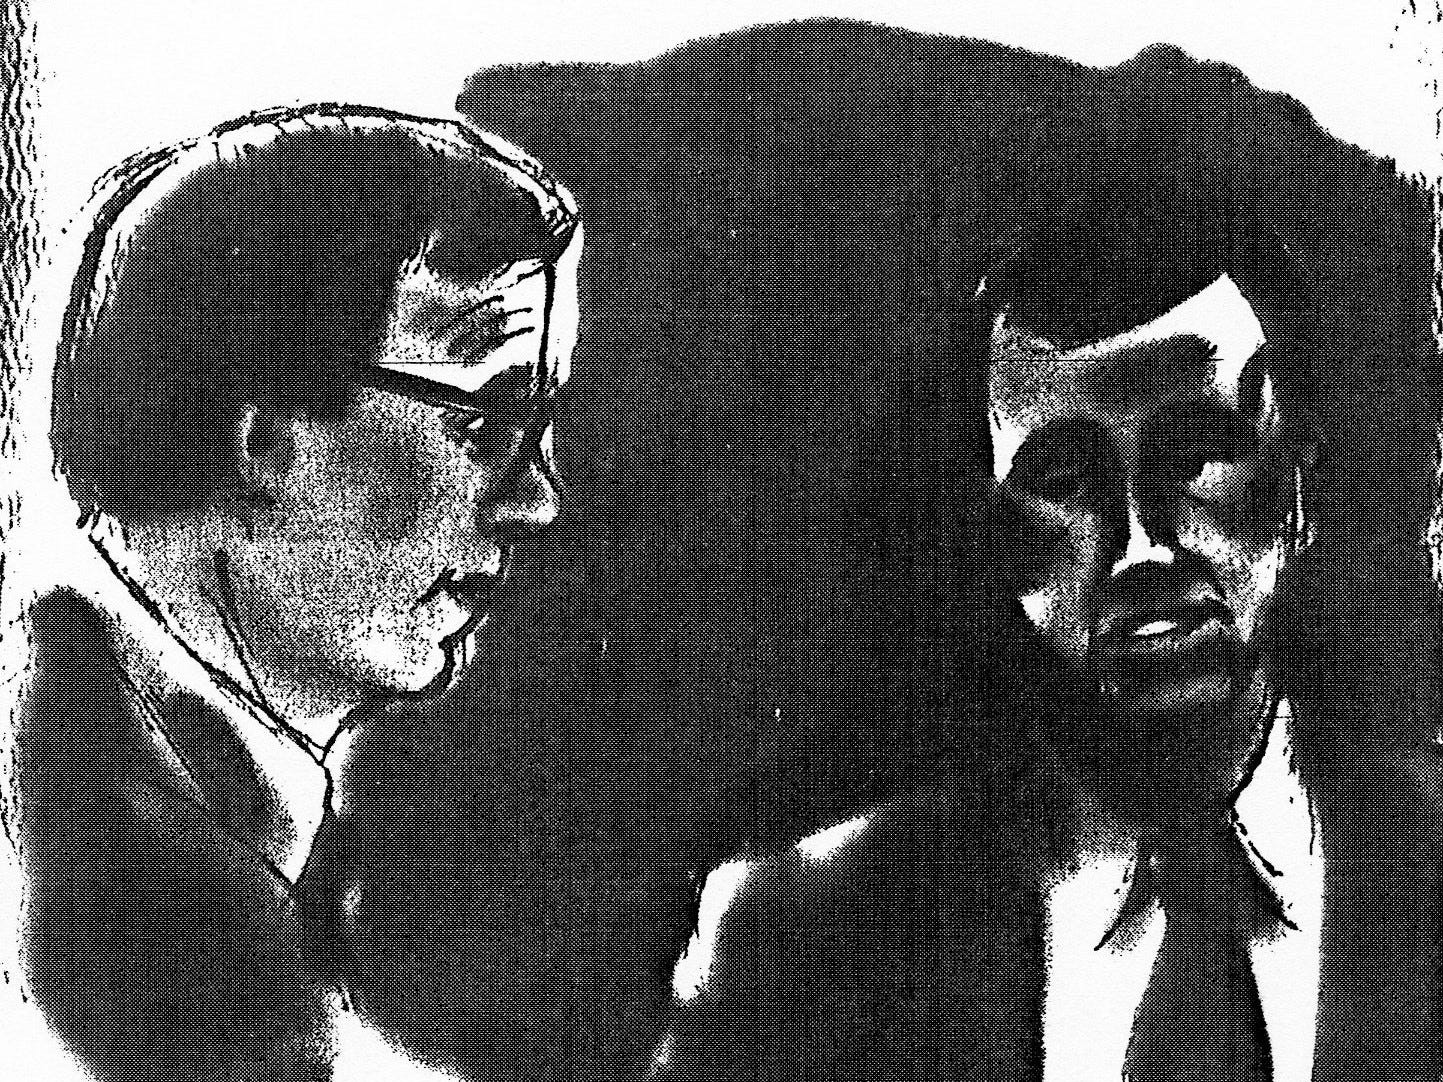 A courtroom sketch shows defense attorney Terry Noffsinger and defendant Patrick Bradford during Bradford's 1993 murder trial. Bradford was convicted of killing girlfriend Tammy Lohr and setting her body on fire.